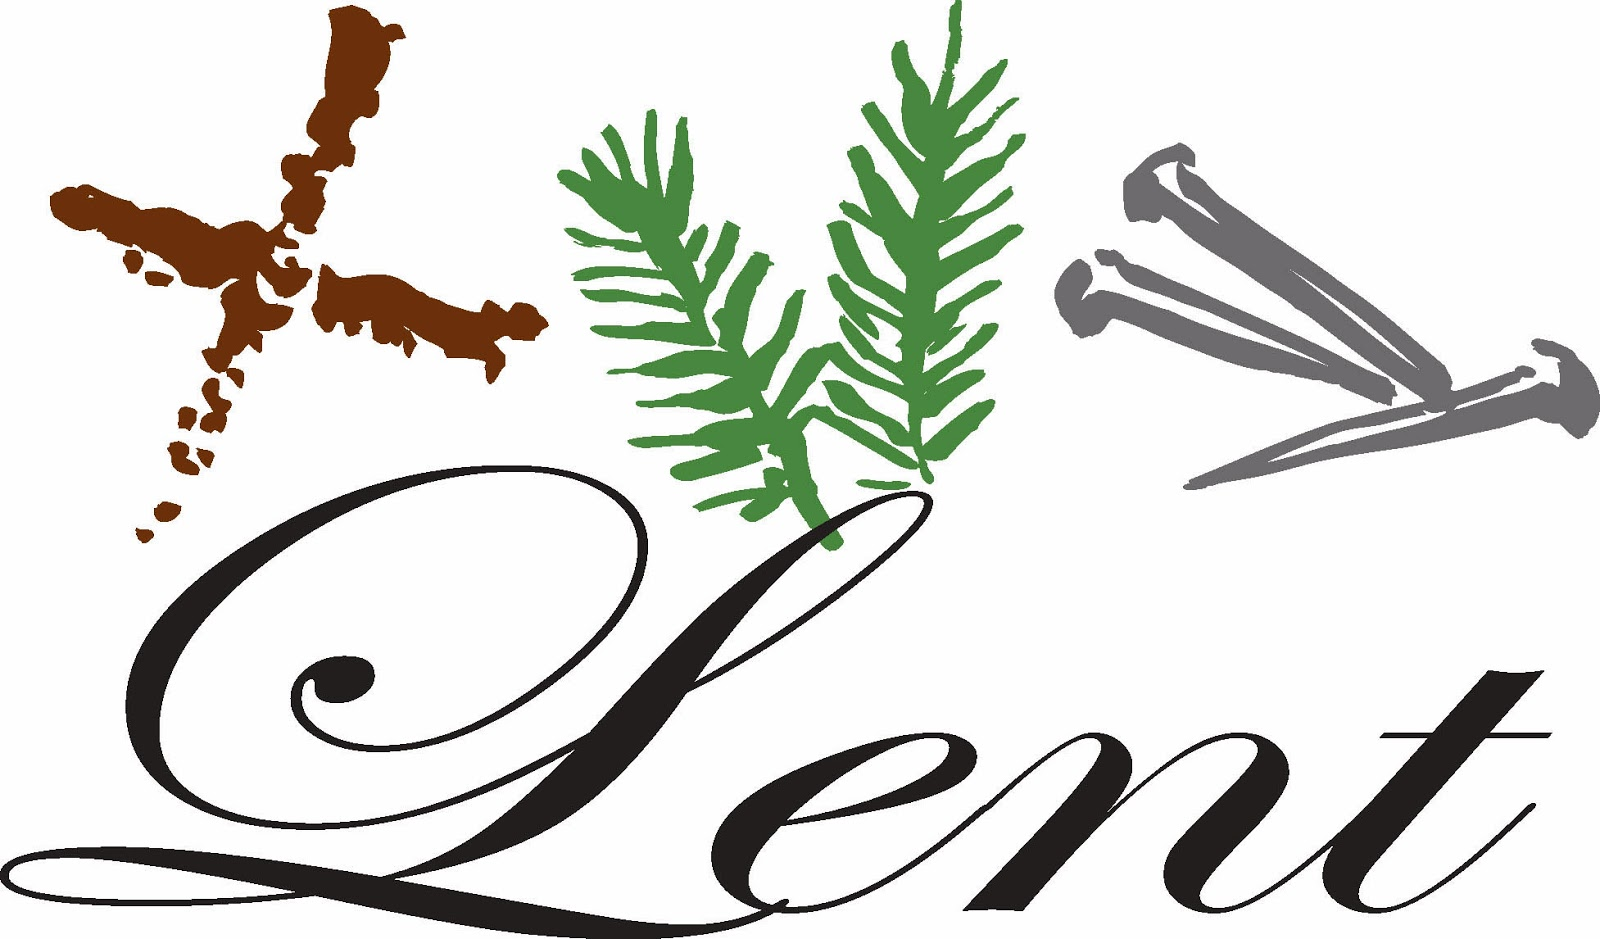 Clipart for the first sunday of lent svg freeuse download Free Lenten Dinner Cliparts, Download Free Clip Art, Free Clip Art ... svg freeuse download